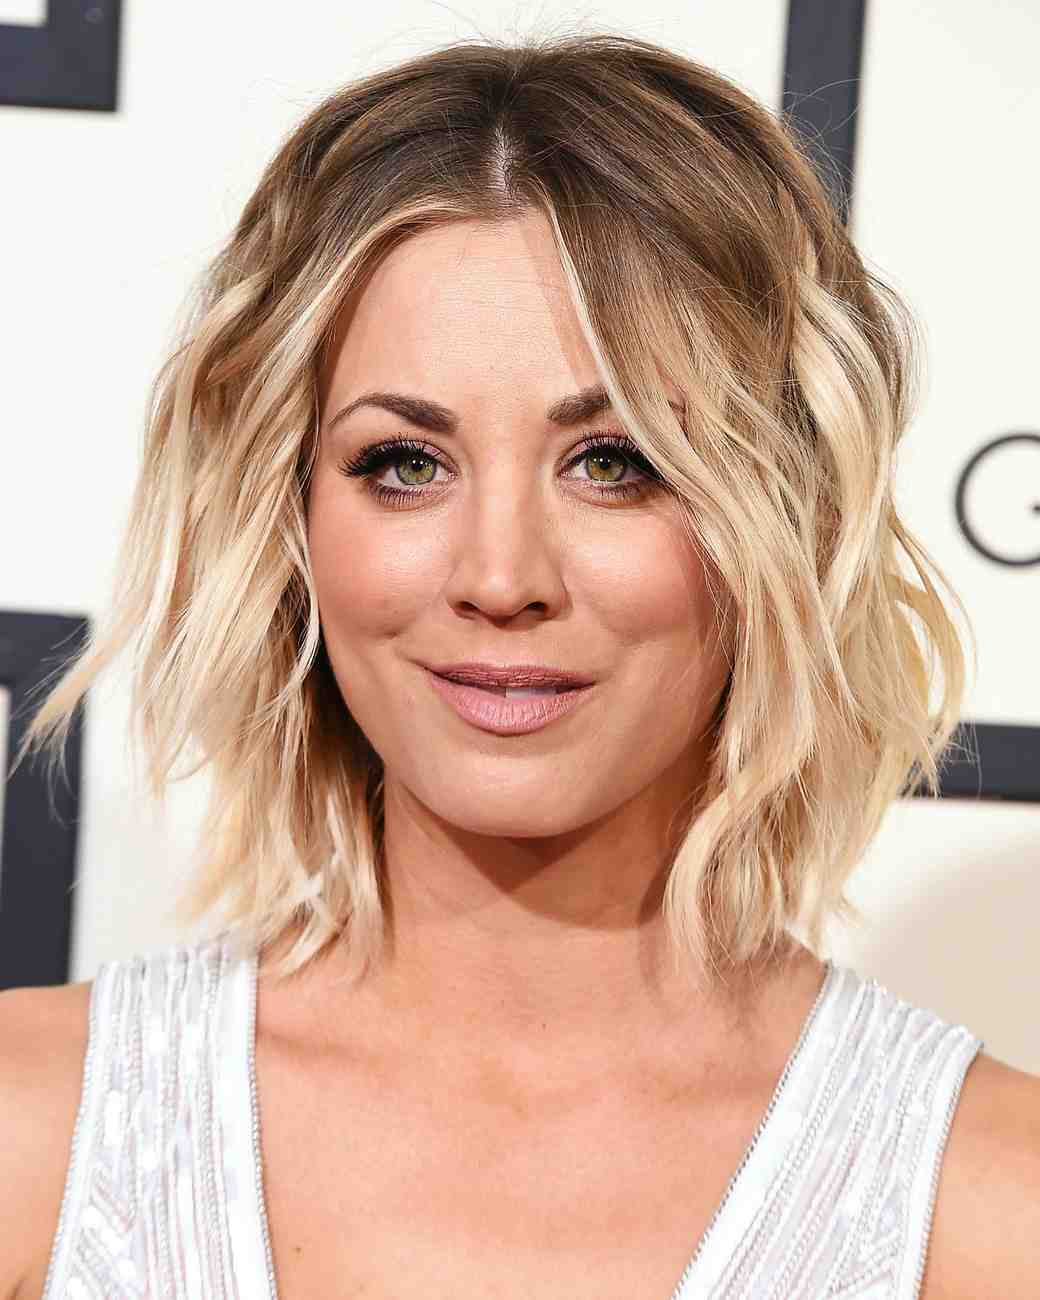 Watch 21 Best Long Layered Bob (Layered Lob) Hairstyles in 2019 video